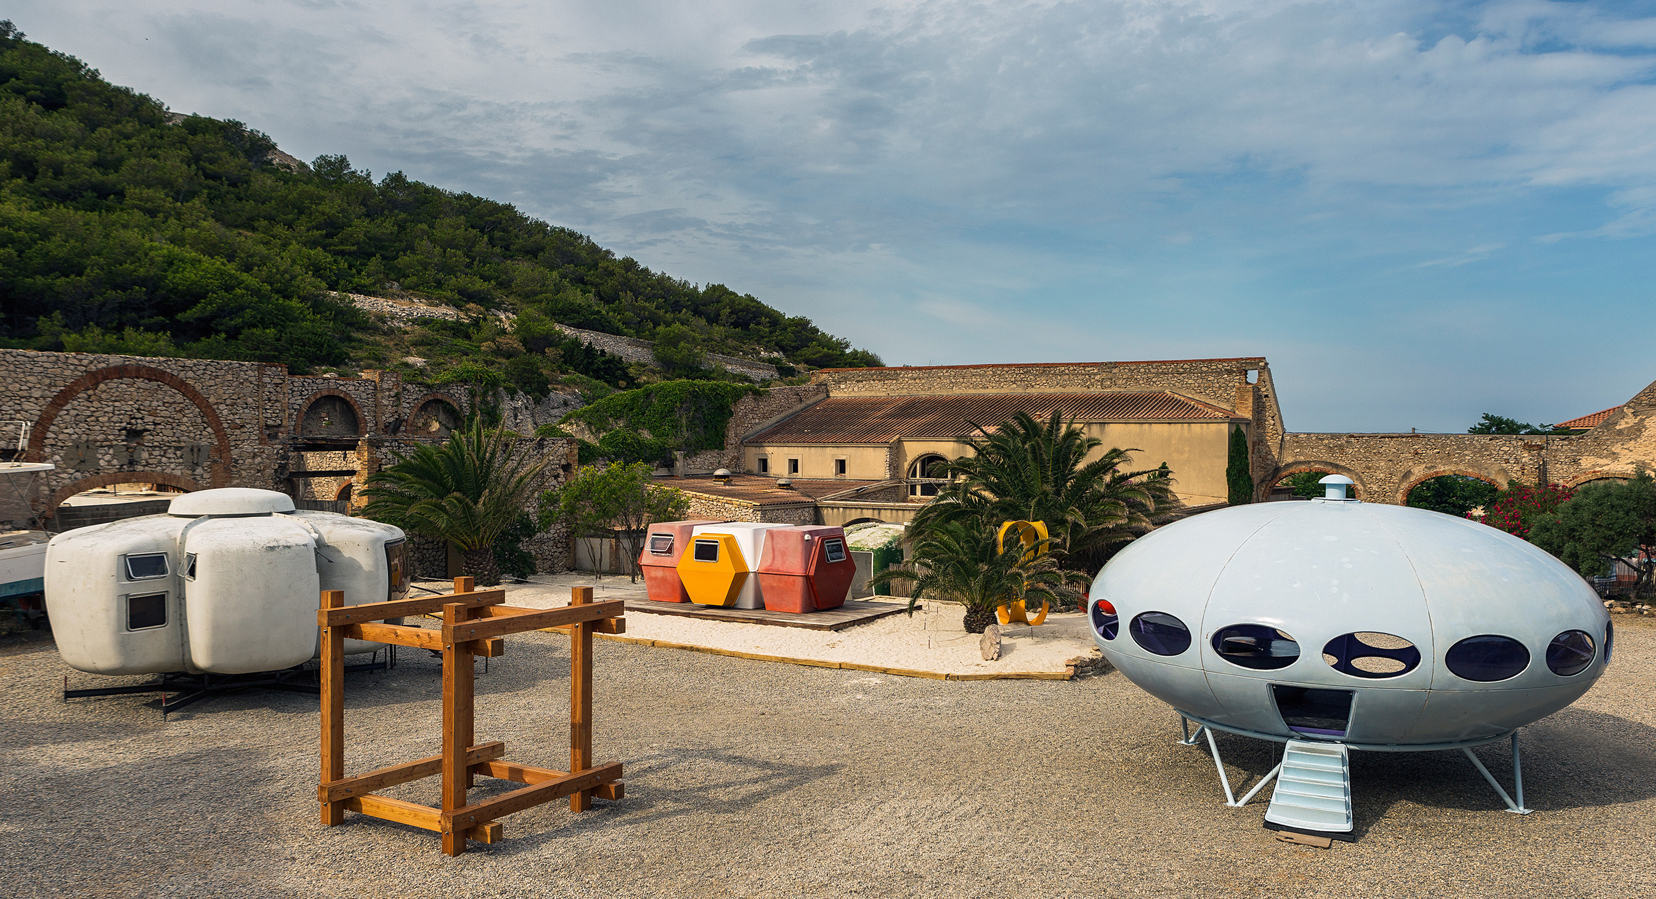 Out Of This World: Futuristic Micro-Homes Land in Marseille For 'Utopie Plastic' Exhibition